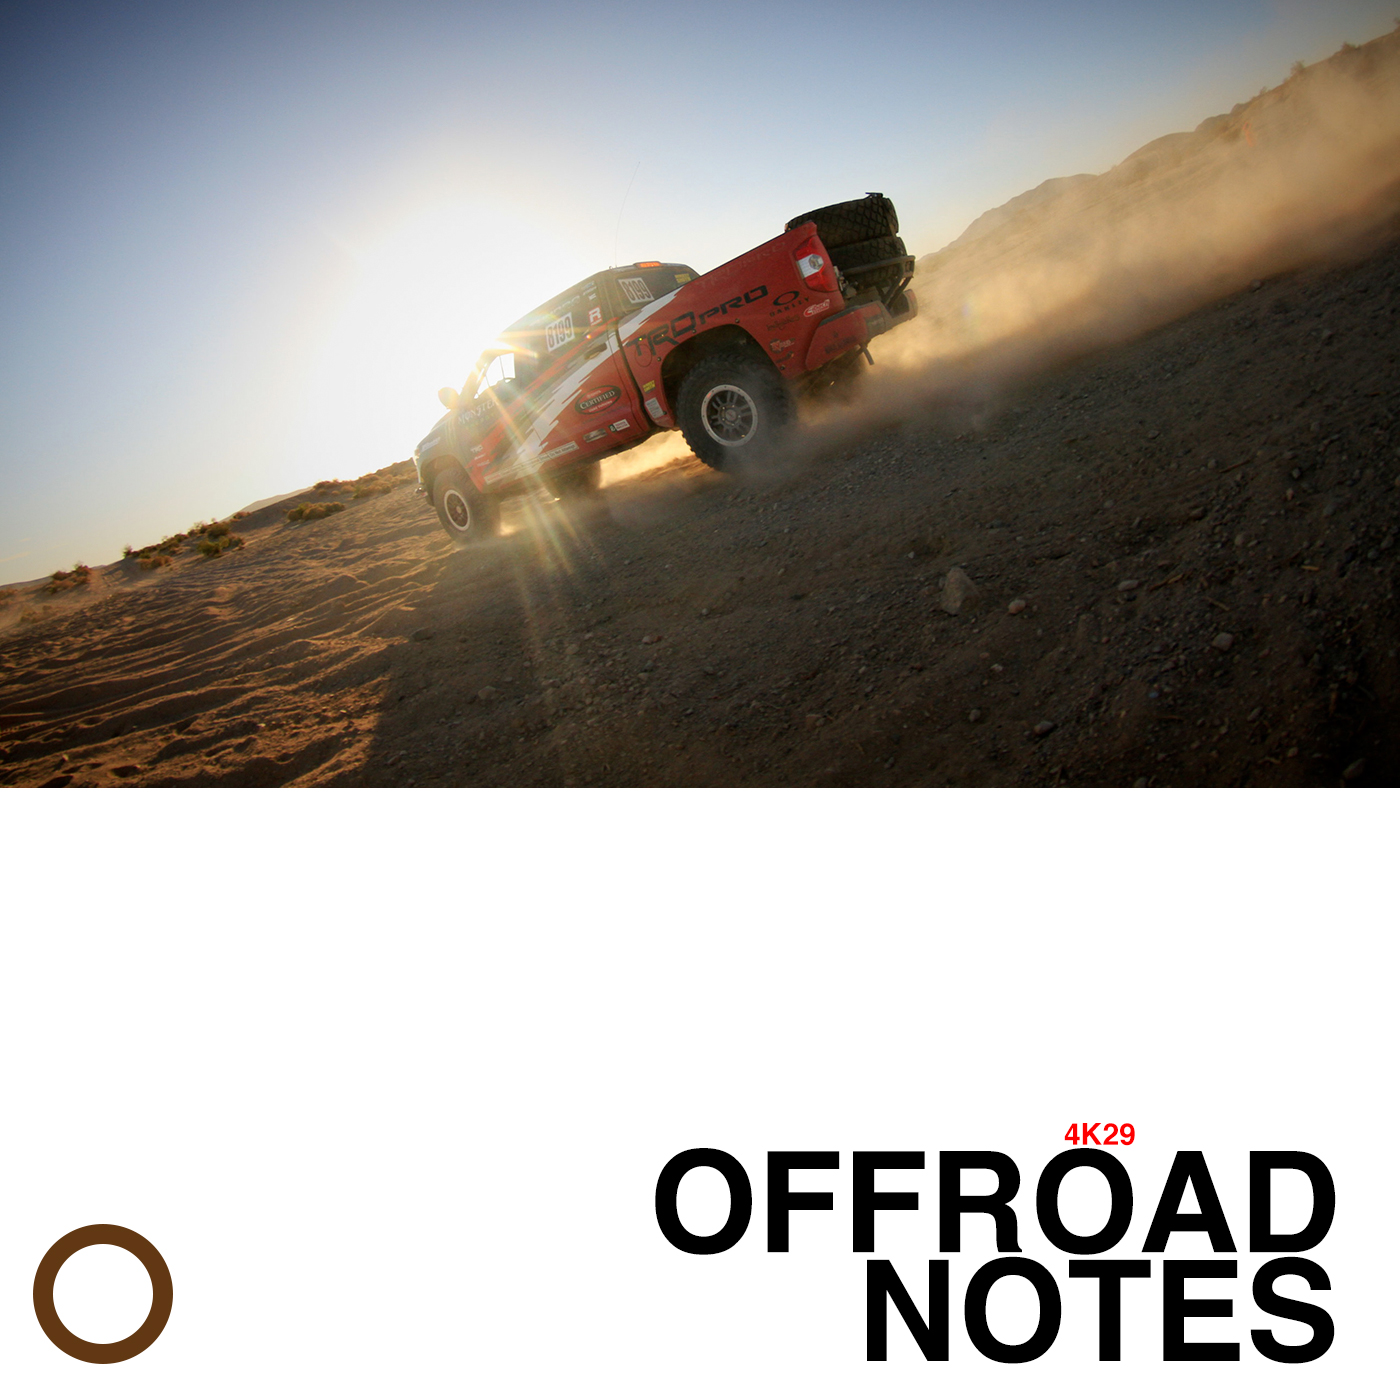 OFF ROAD NOTES 4K29